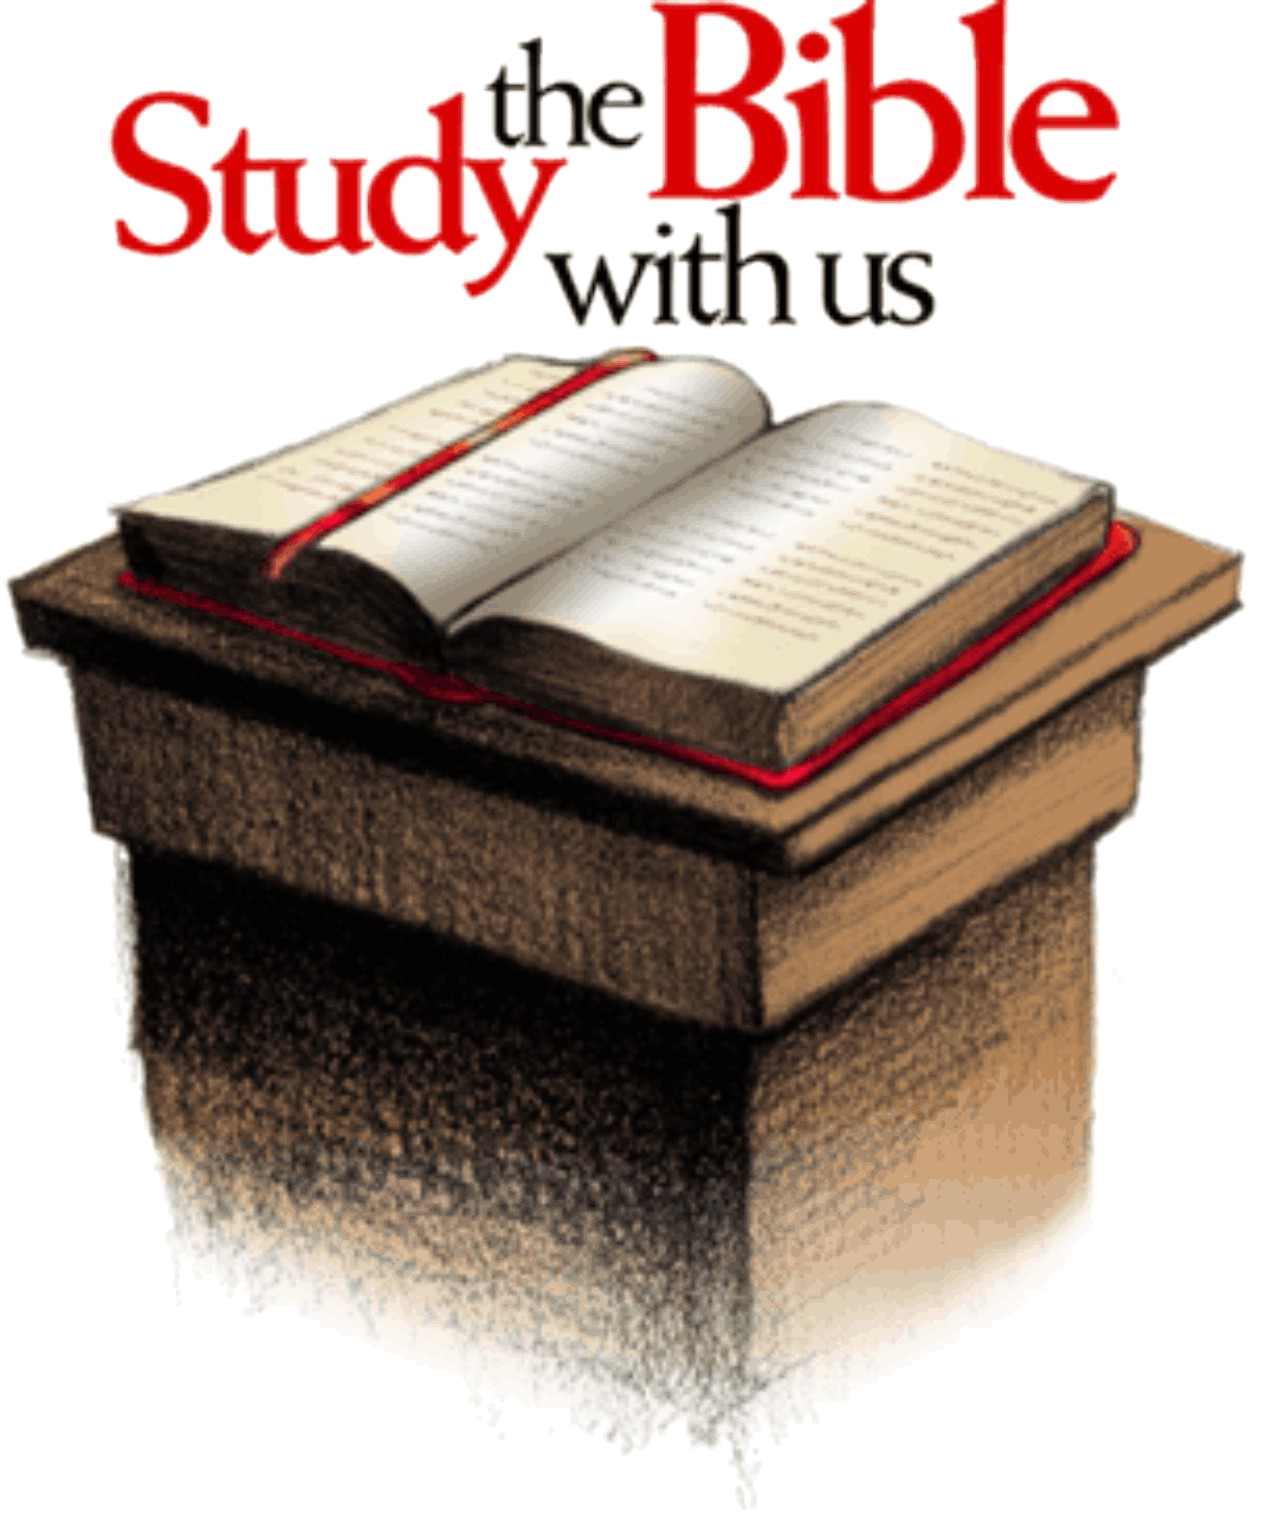 bible study Pictures, Images & Photos | Photobucket